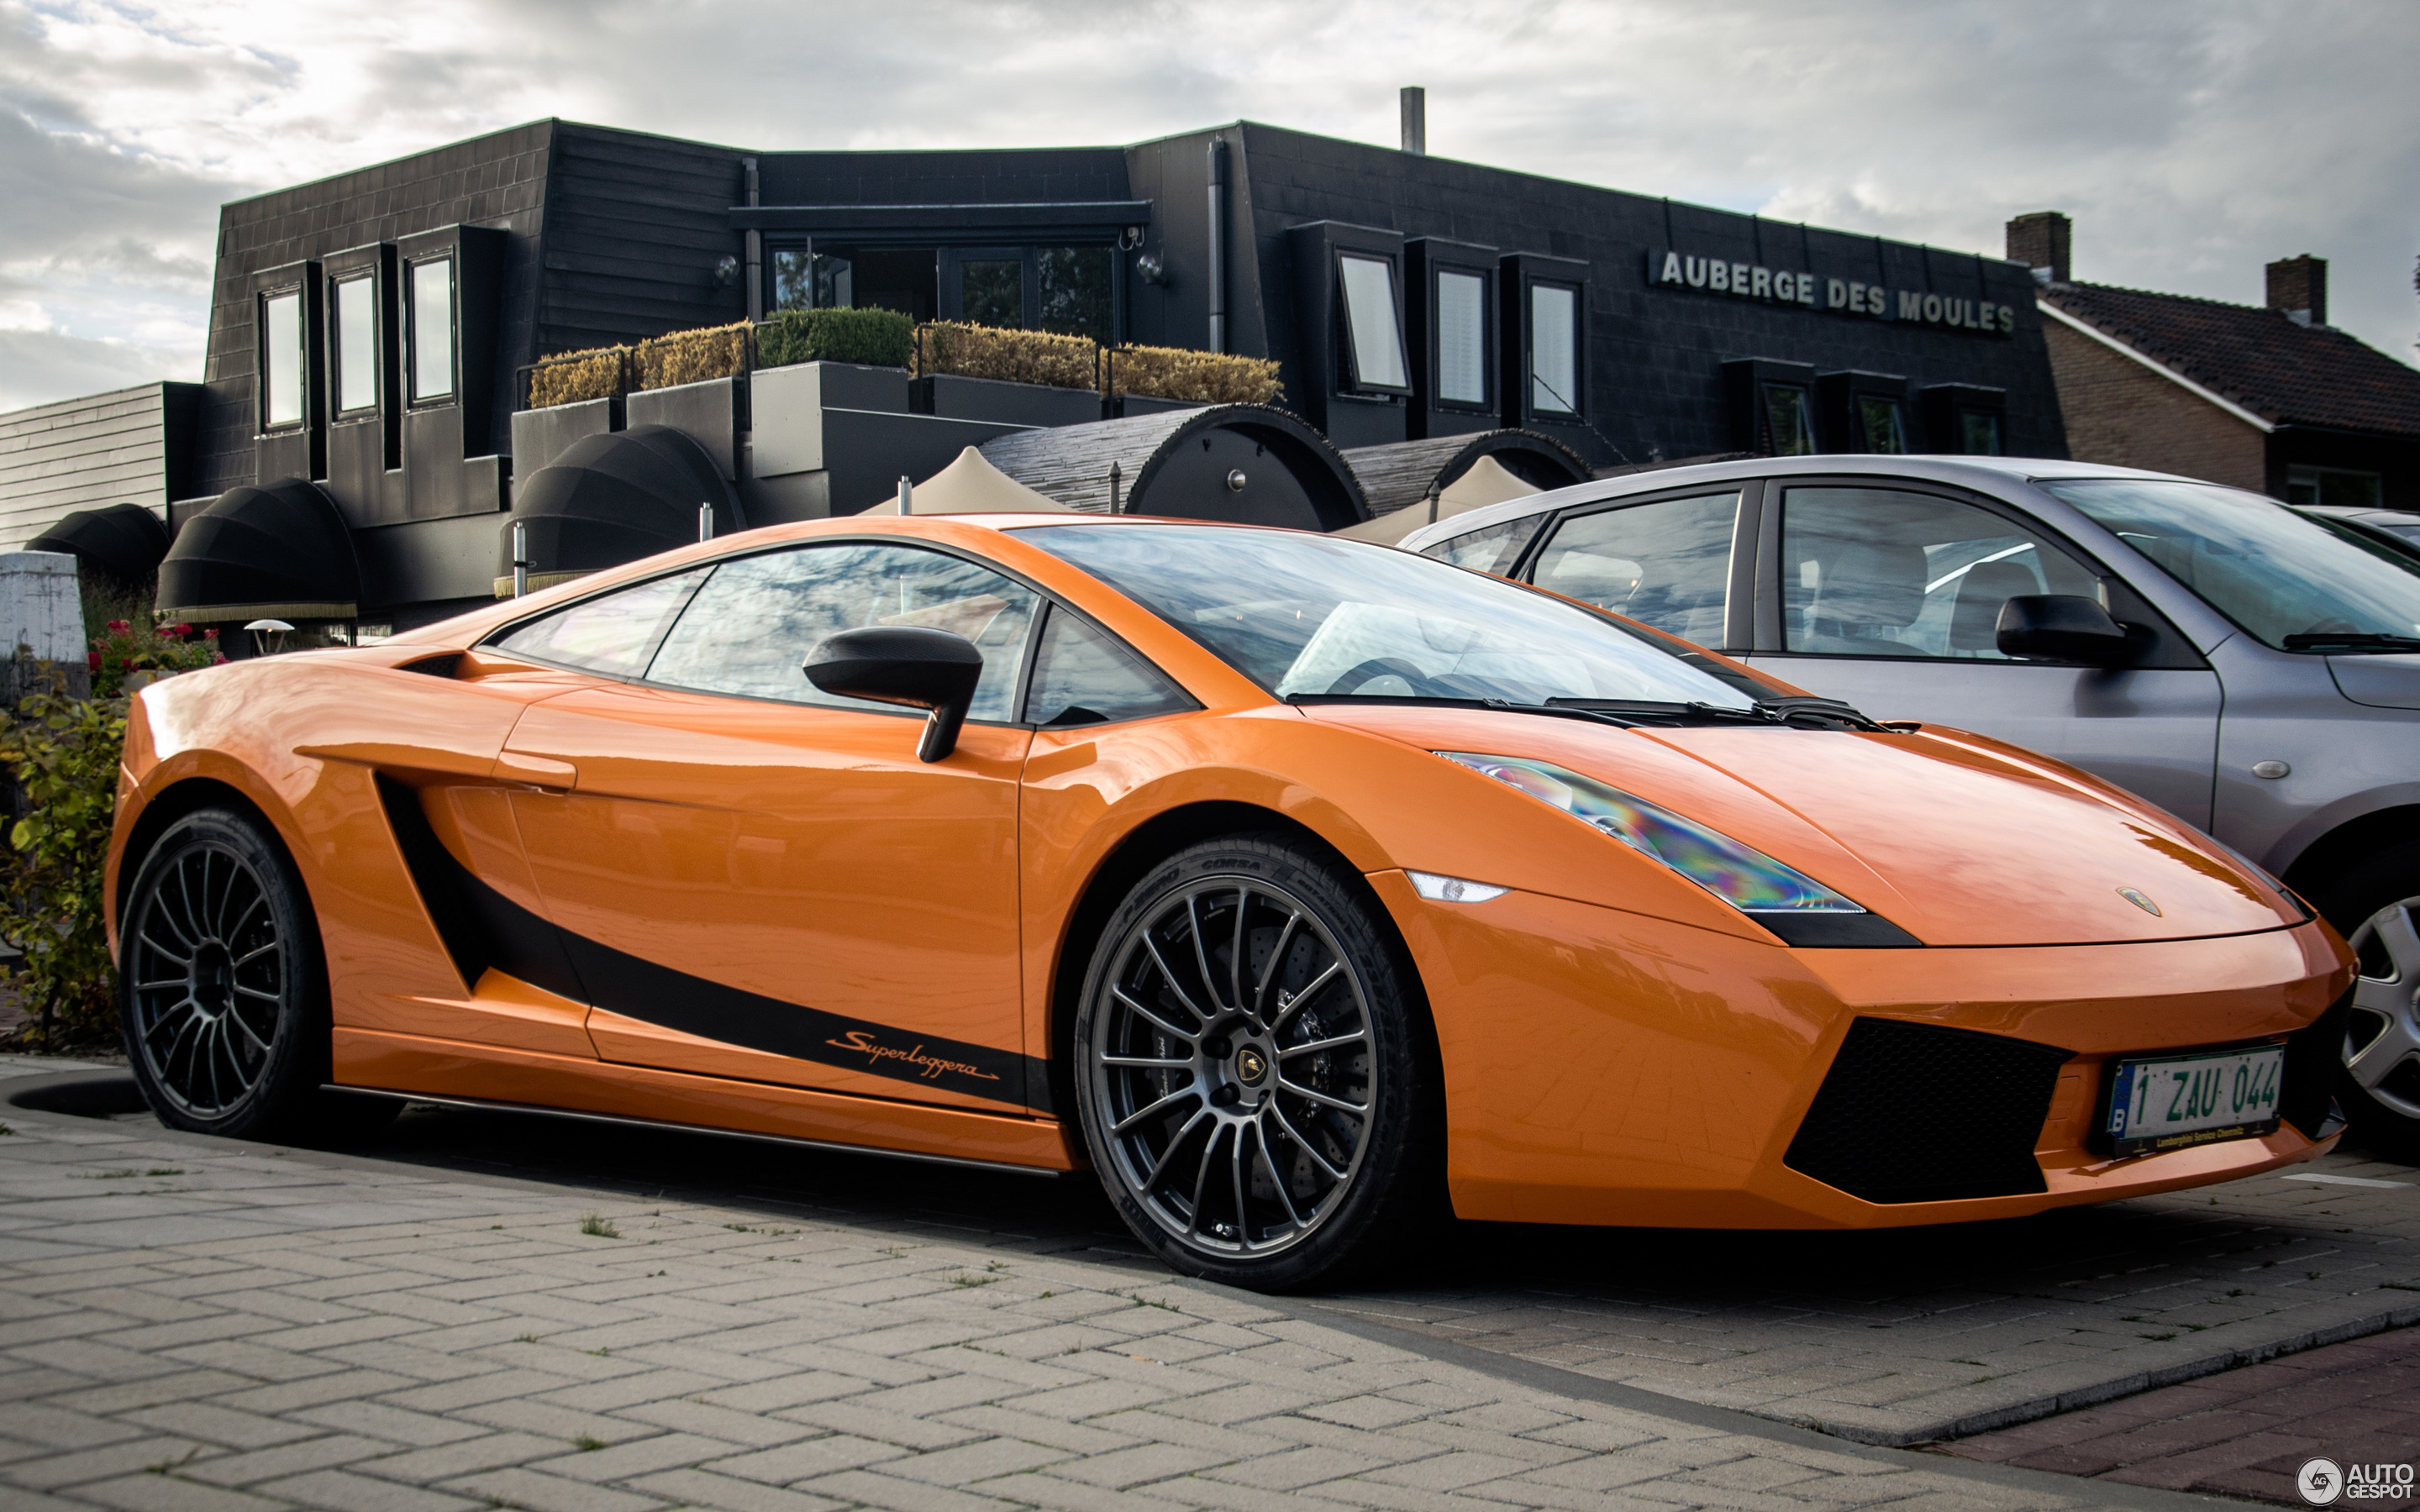 Lamborghini Gallardo Superleggera - 17 February 2018 - Autogespot